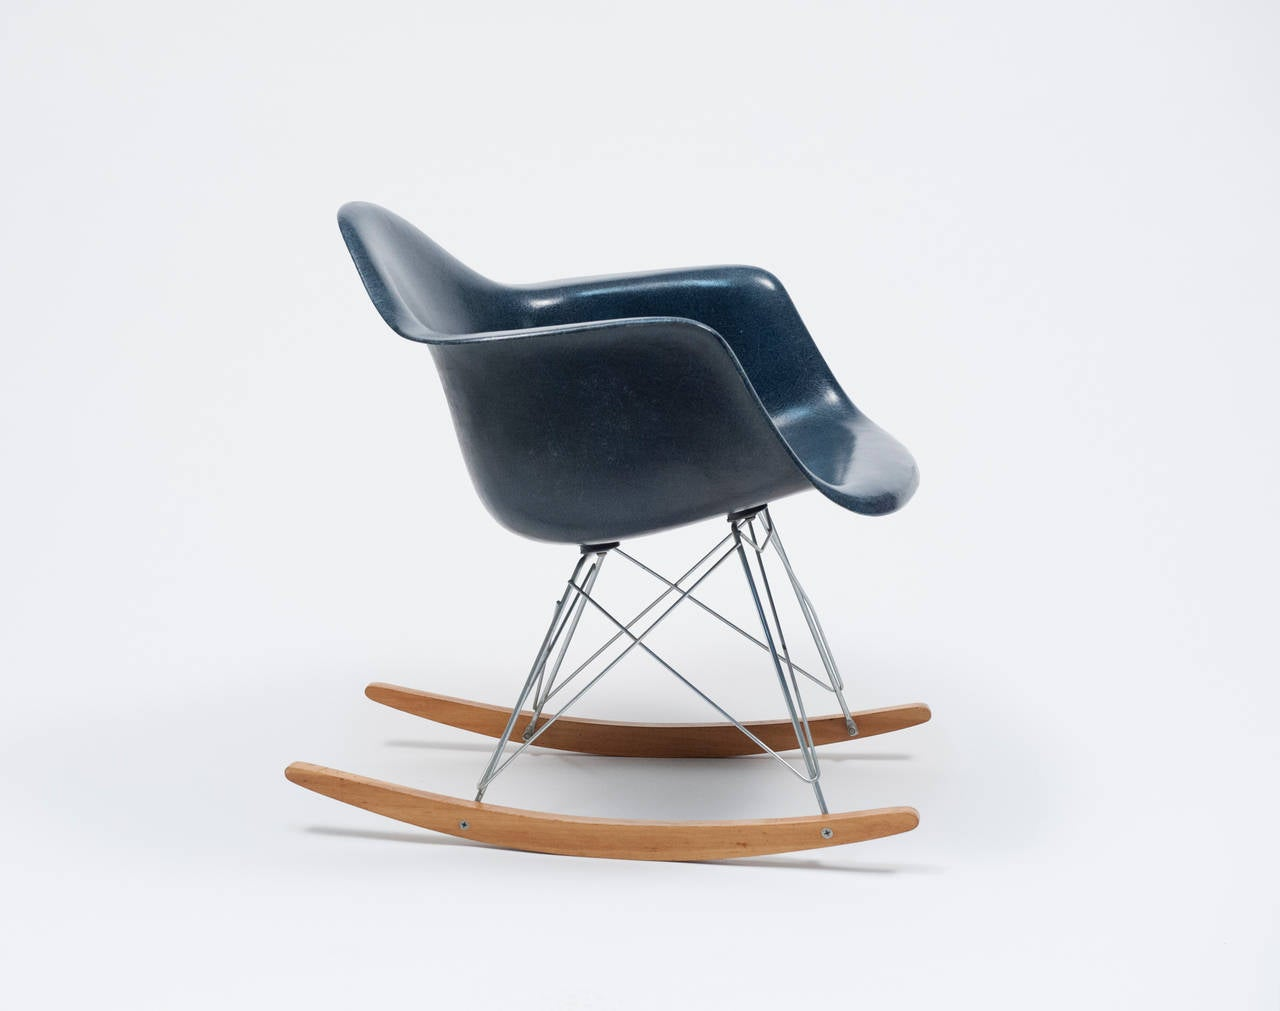 Very Impressive portraiture of Home > Furniture > Seating > Rocking Chairs with #68422B color and 1280x1011 pixels